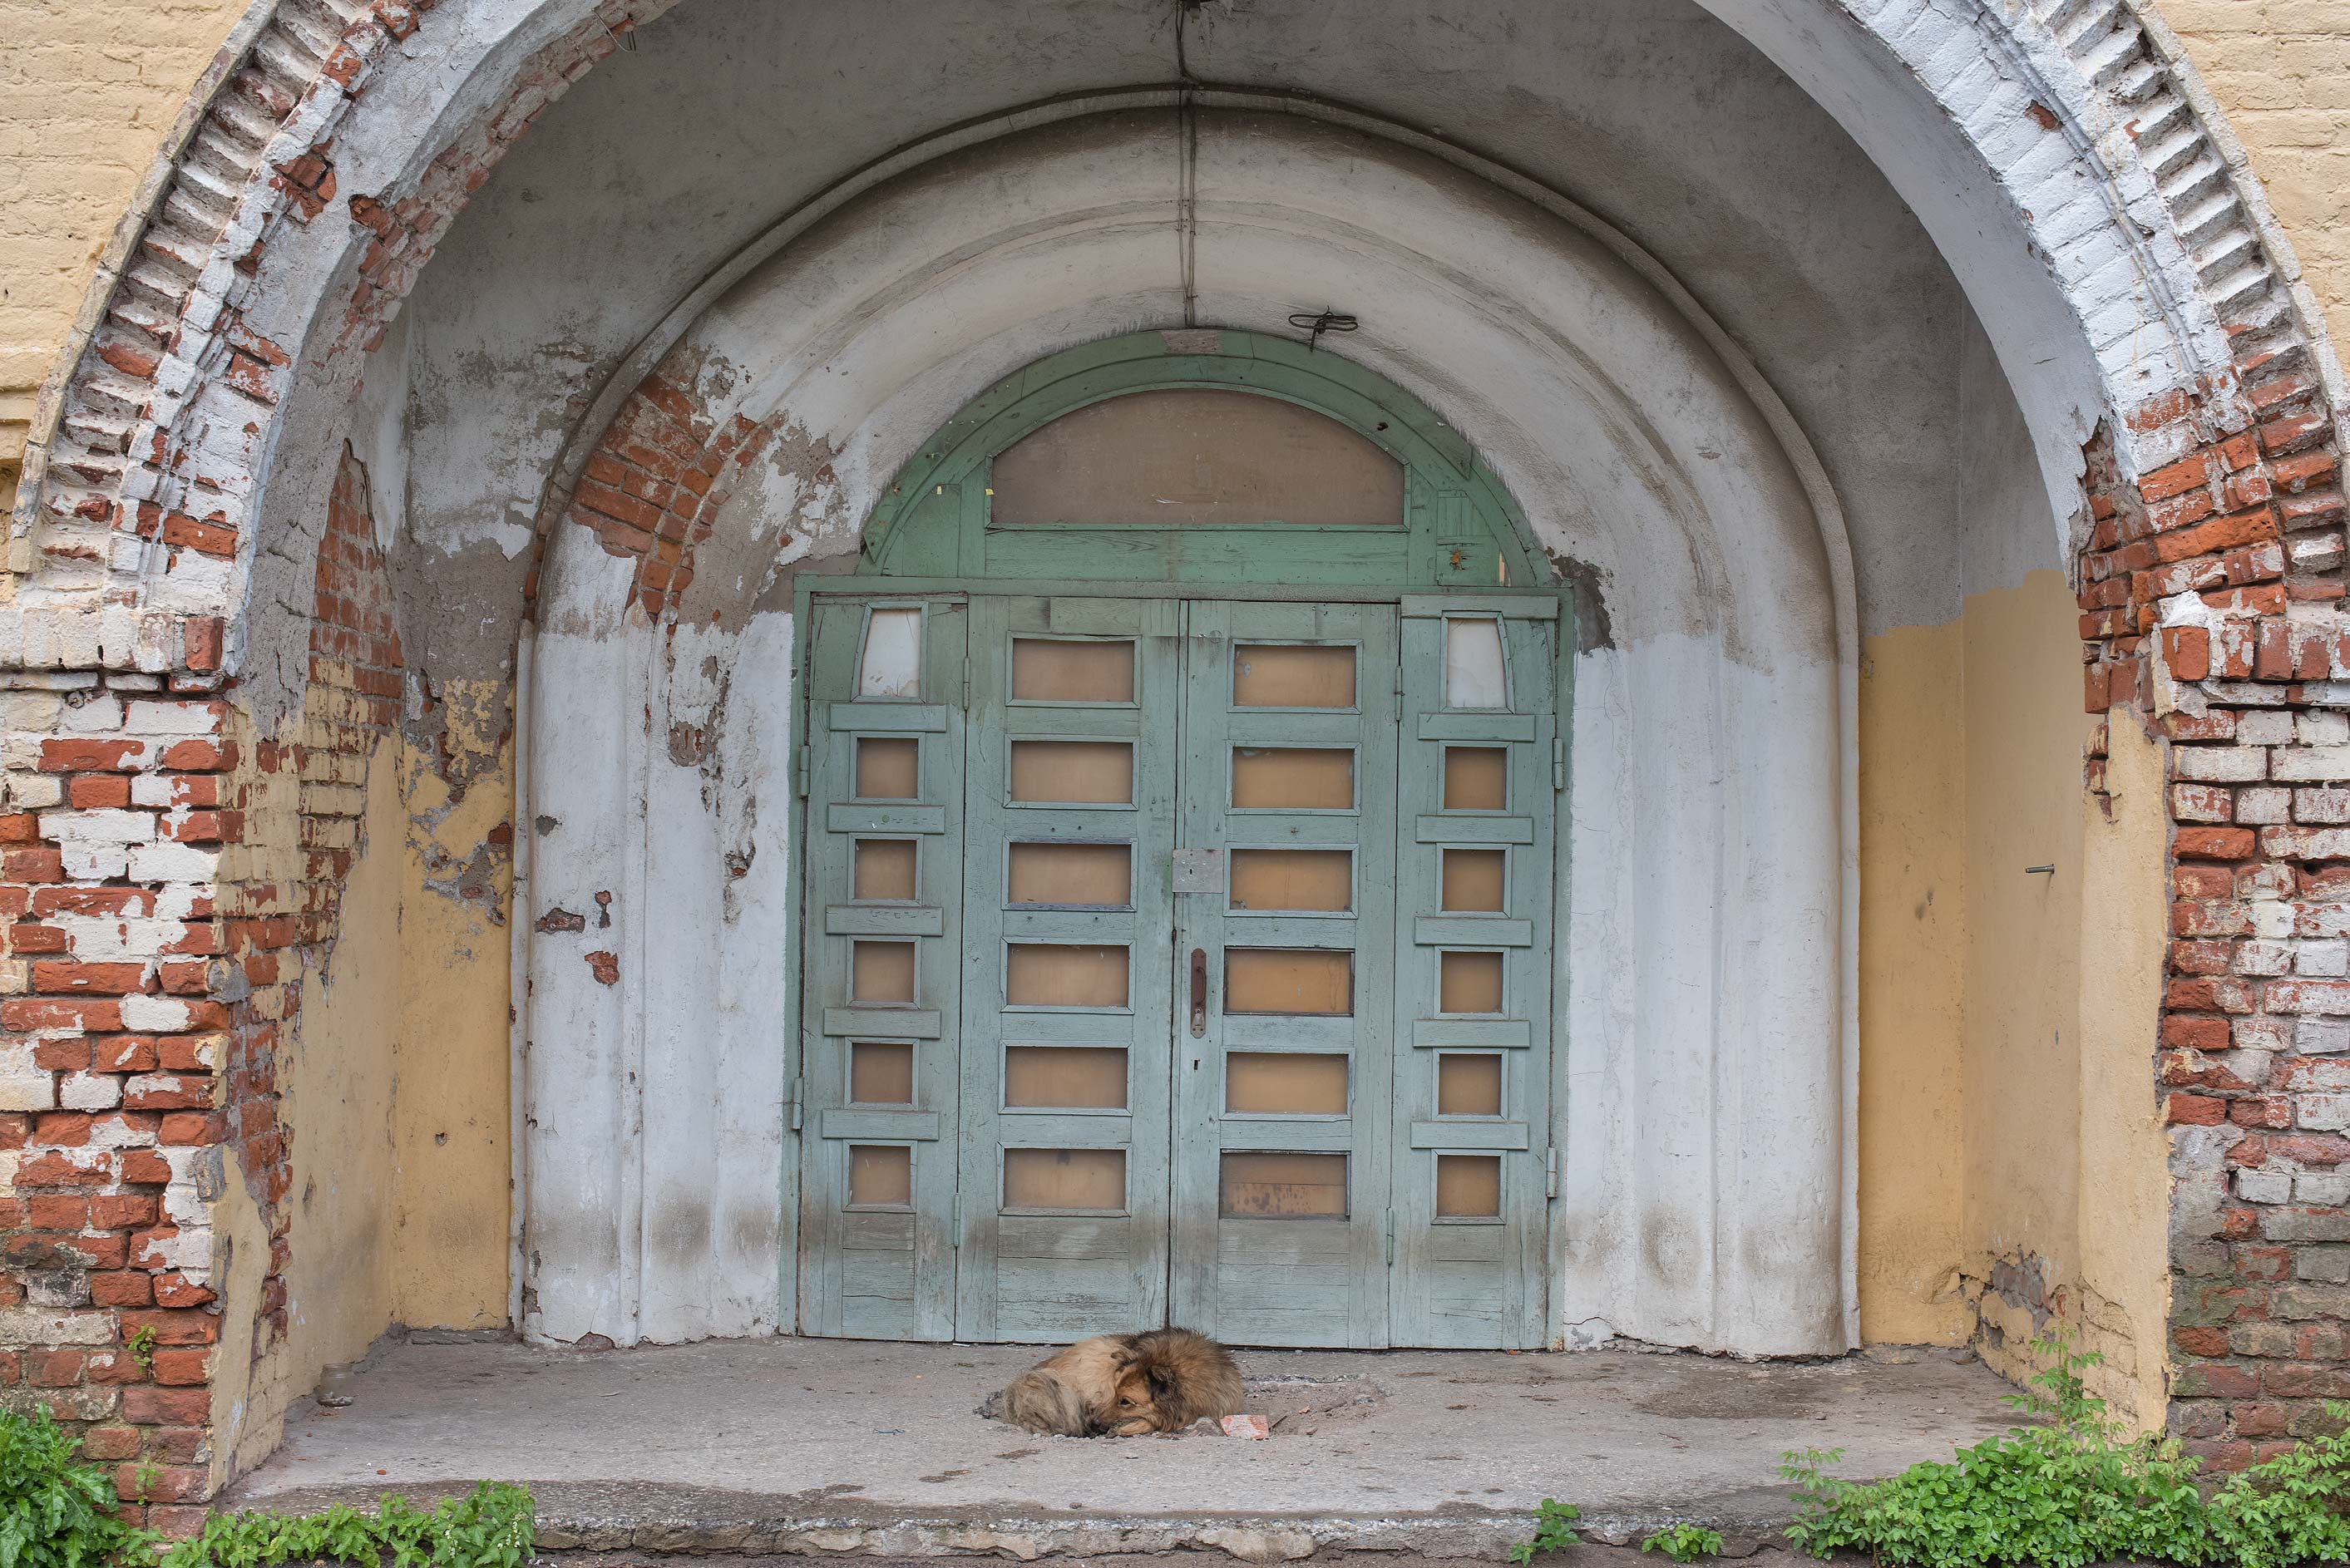 Sleeping dog at the entrance of State Agrarian...Selo, near St.Petersburg. Russia